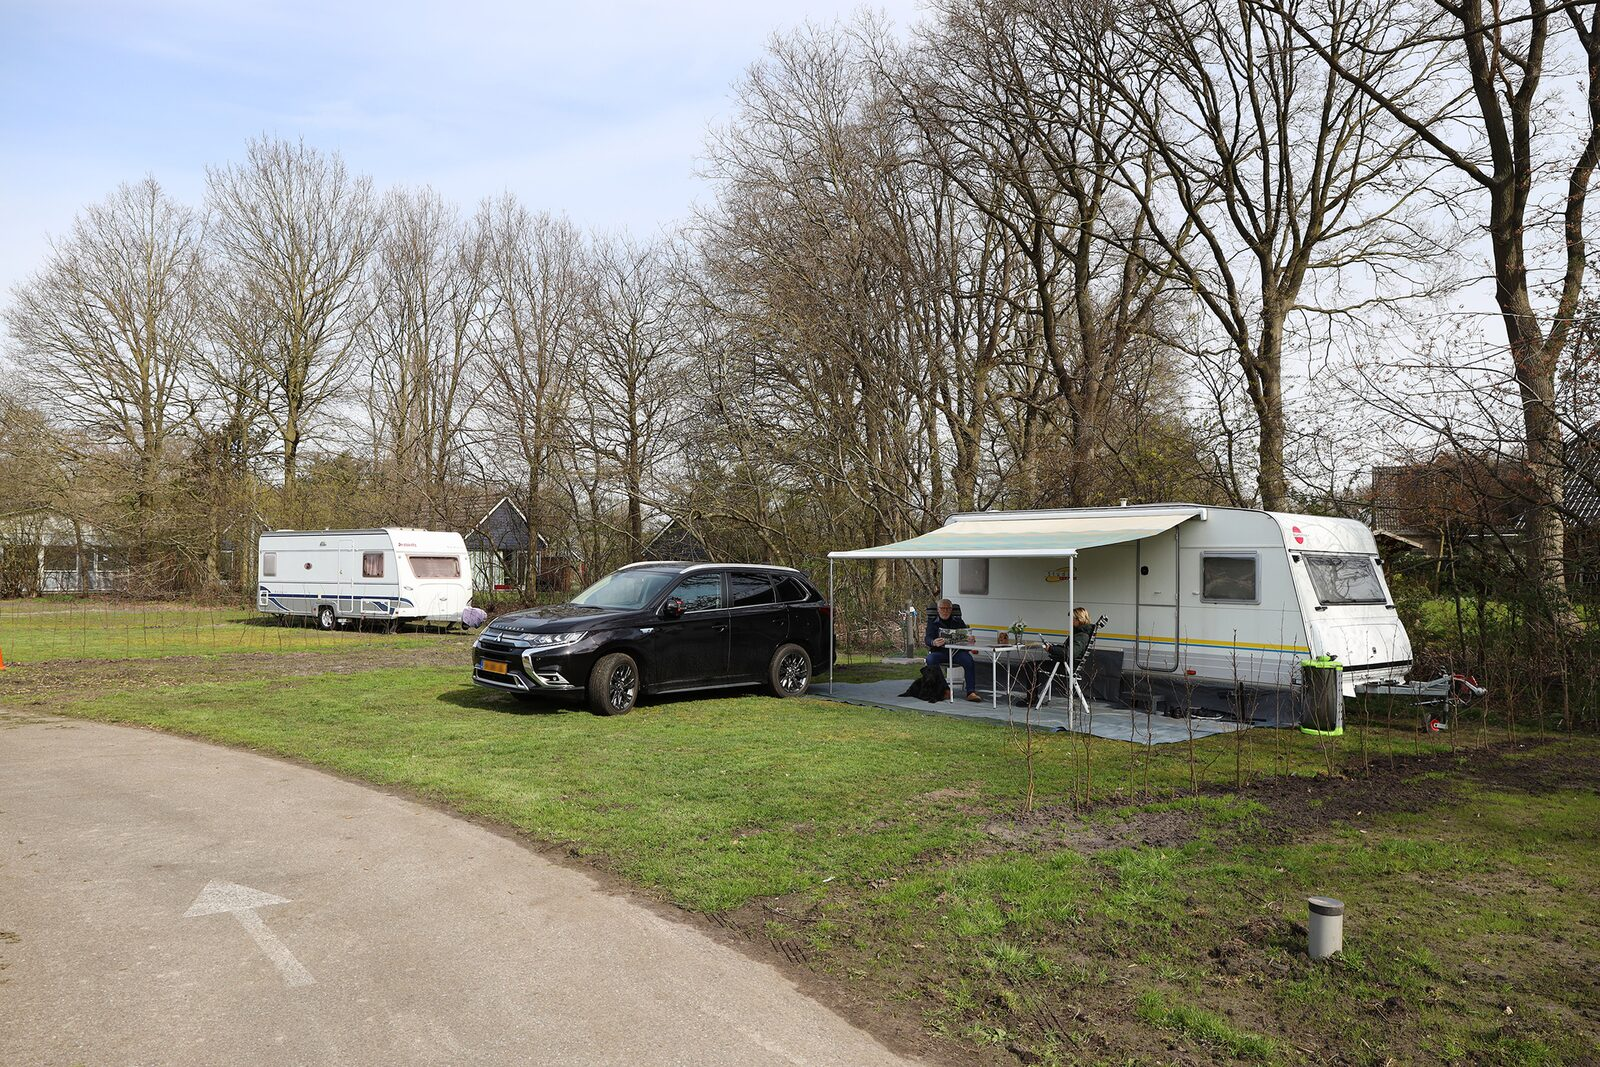 Camping pitch with parking spot